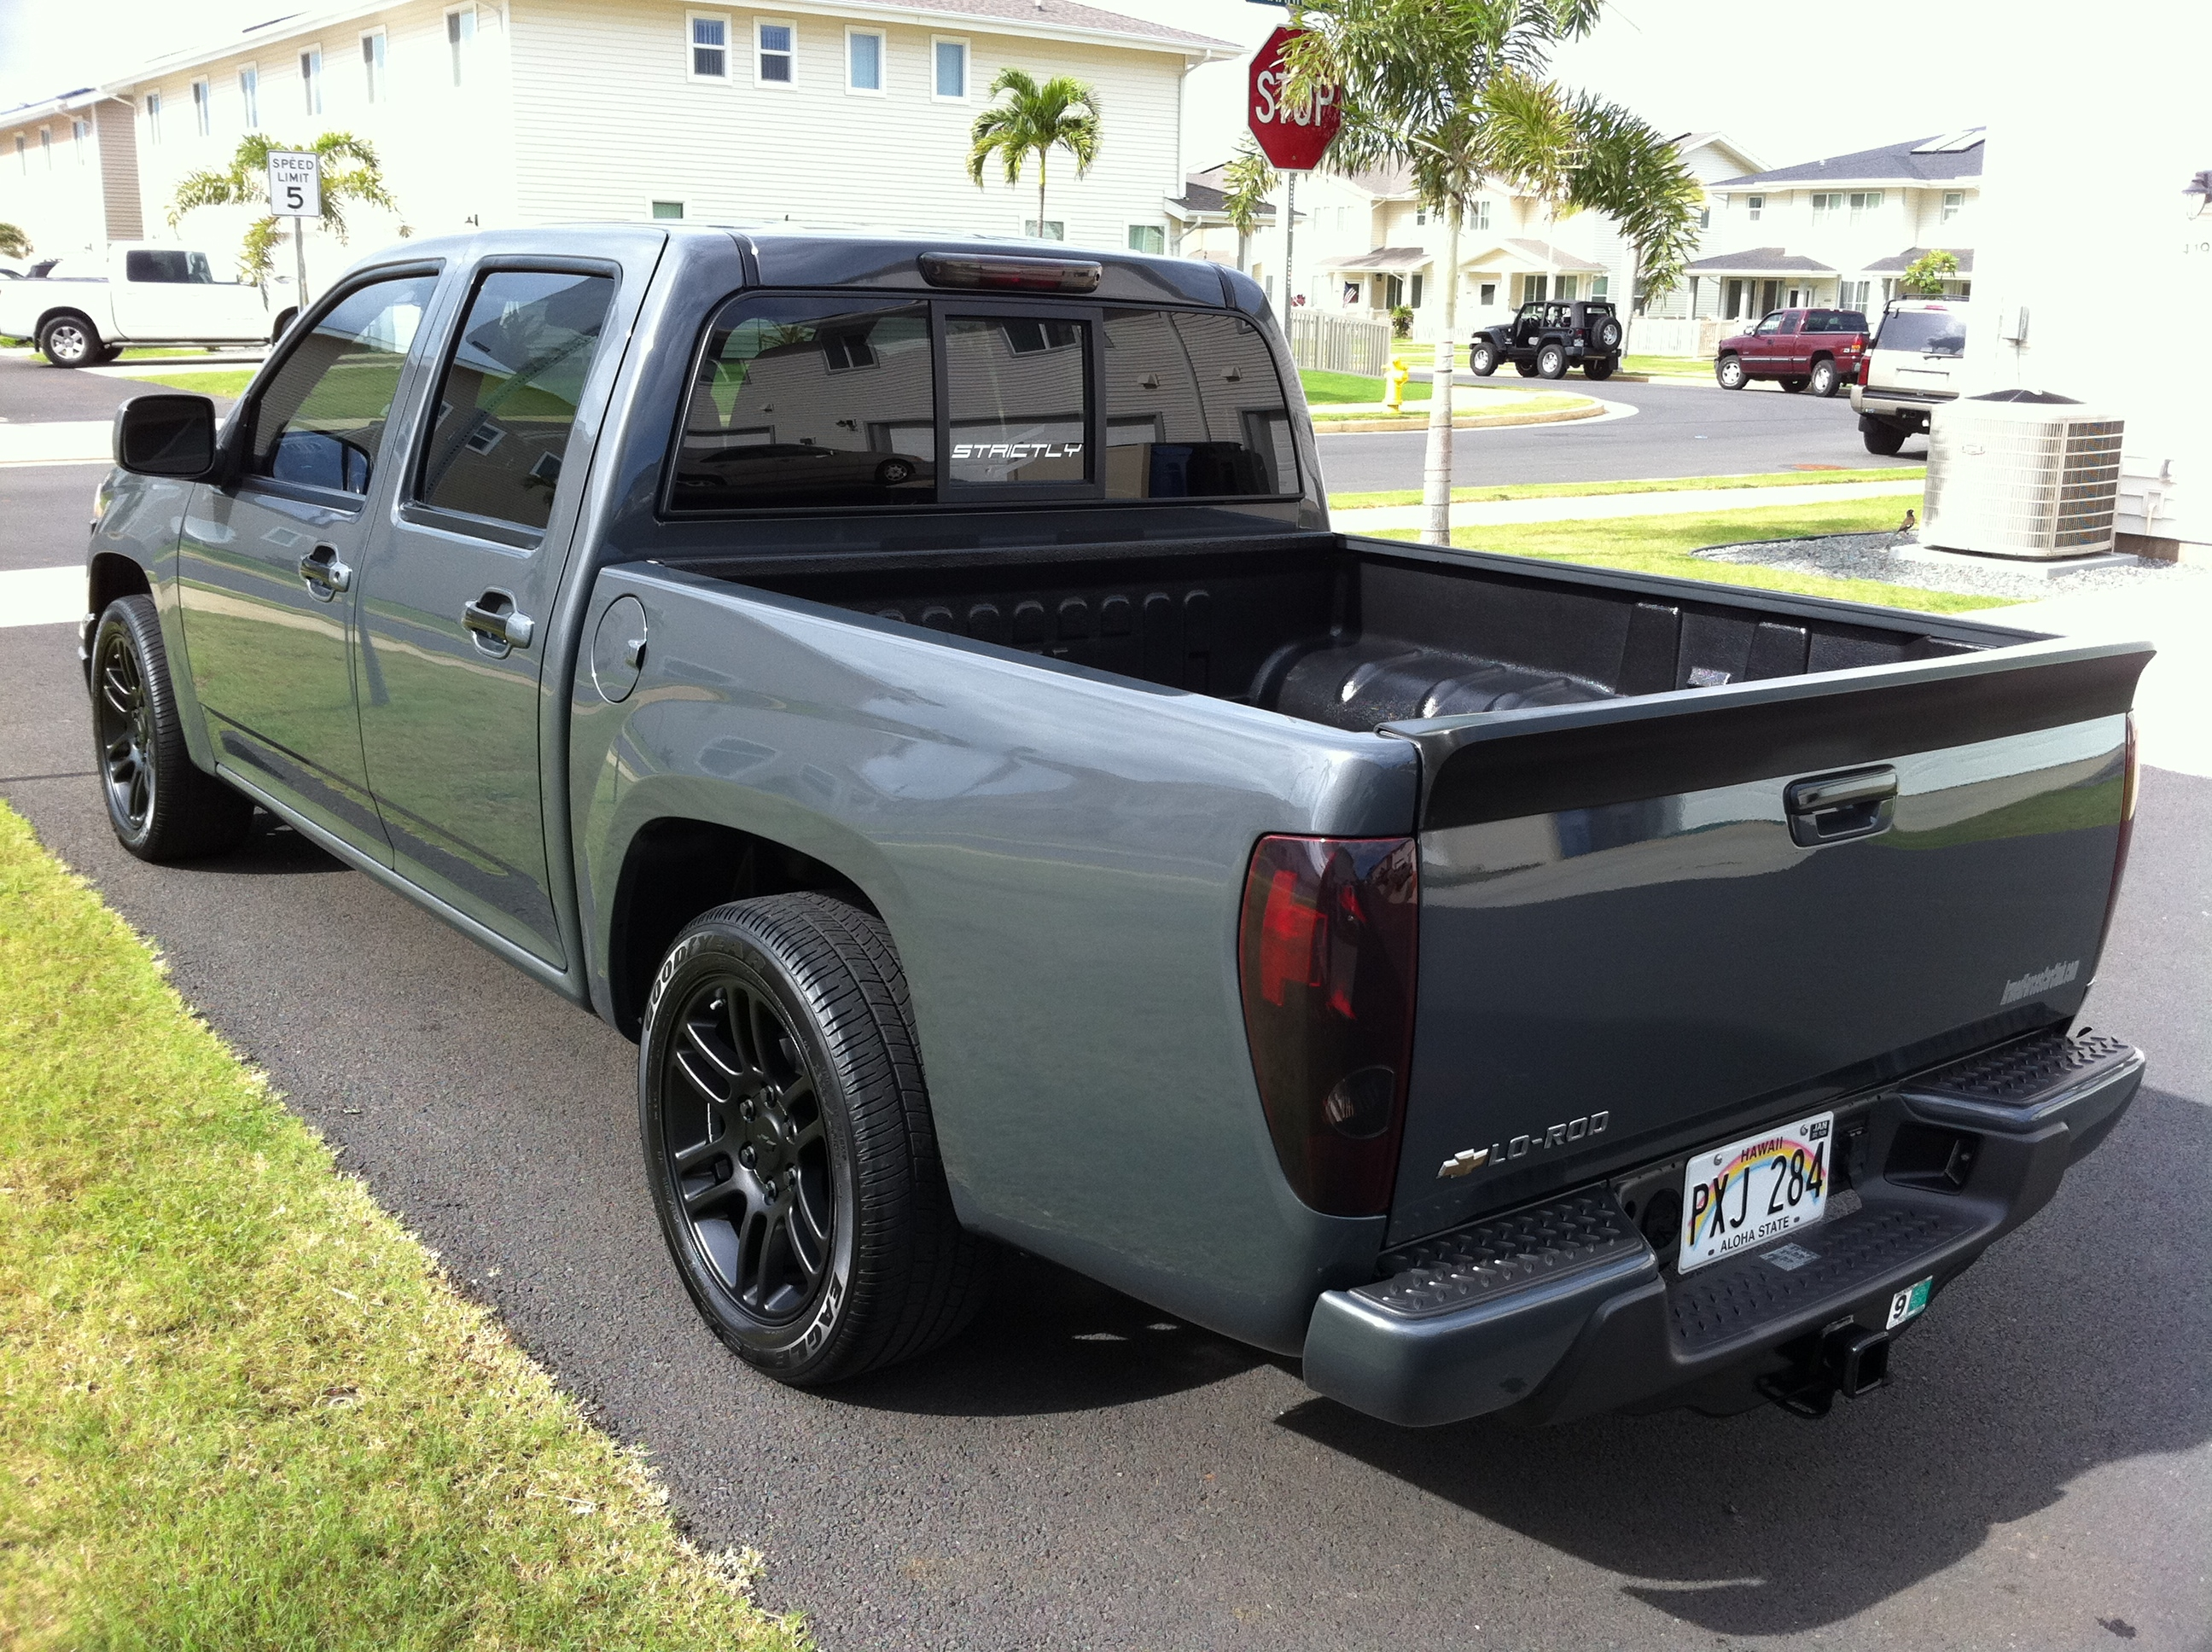 dmgeox 39 s 2009 chevrolet colorado crew cab lt pickup 4d 5 ft in san diego ca. Black Bedroom Furniture Sets. Home Design Ideas